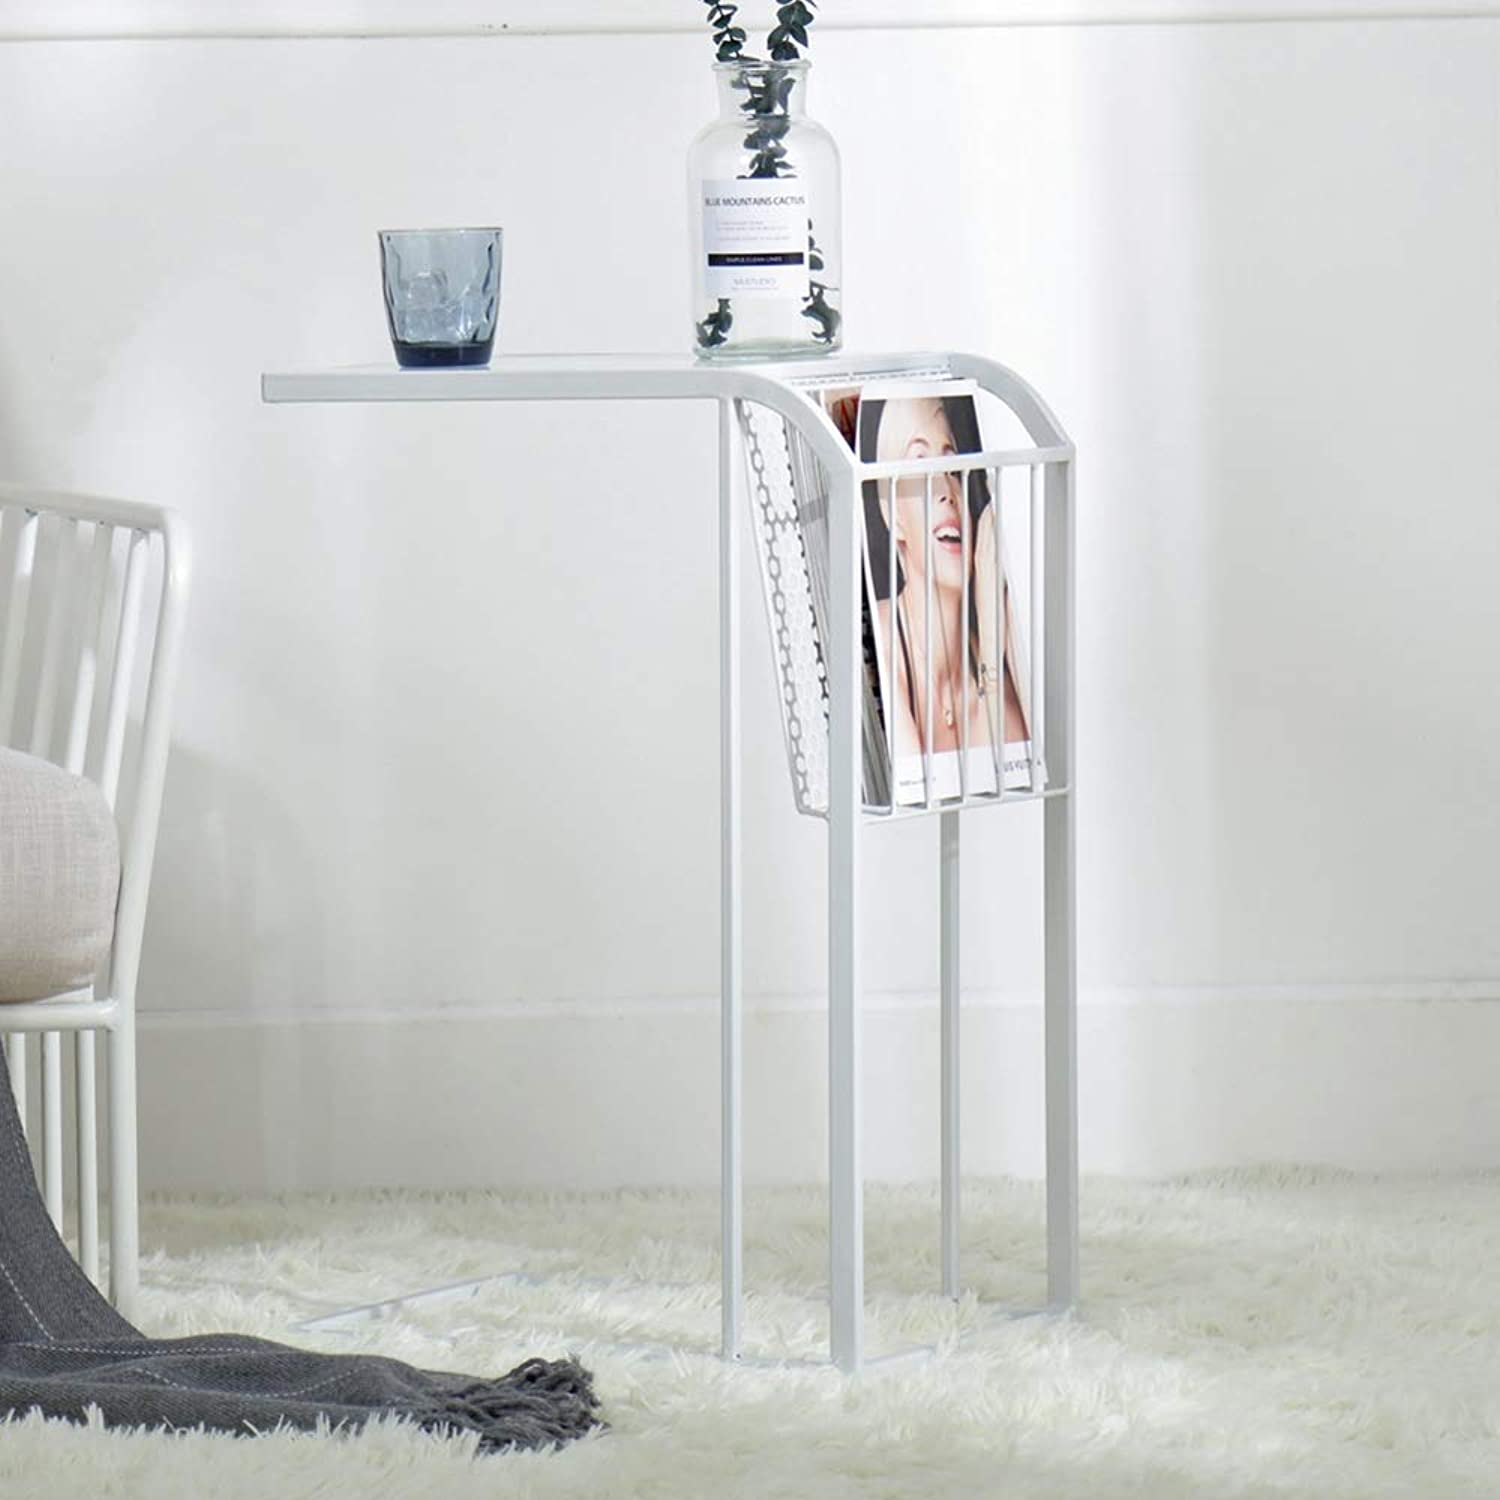 MEIDUO End Table Glass Nesting Tables Living Room Sofa Side for Living Room Bedroom (color   White)